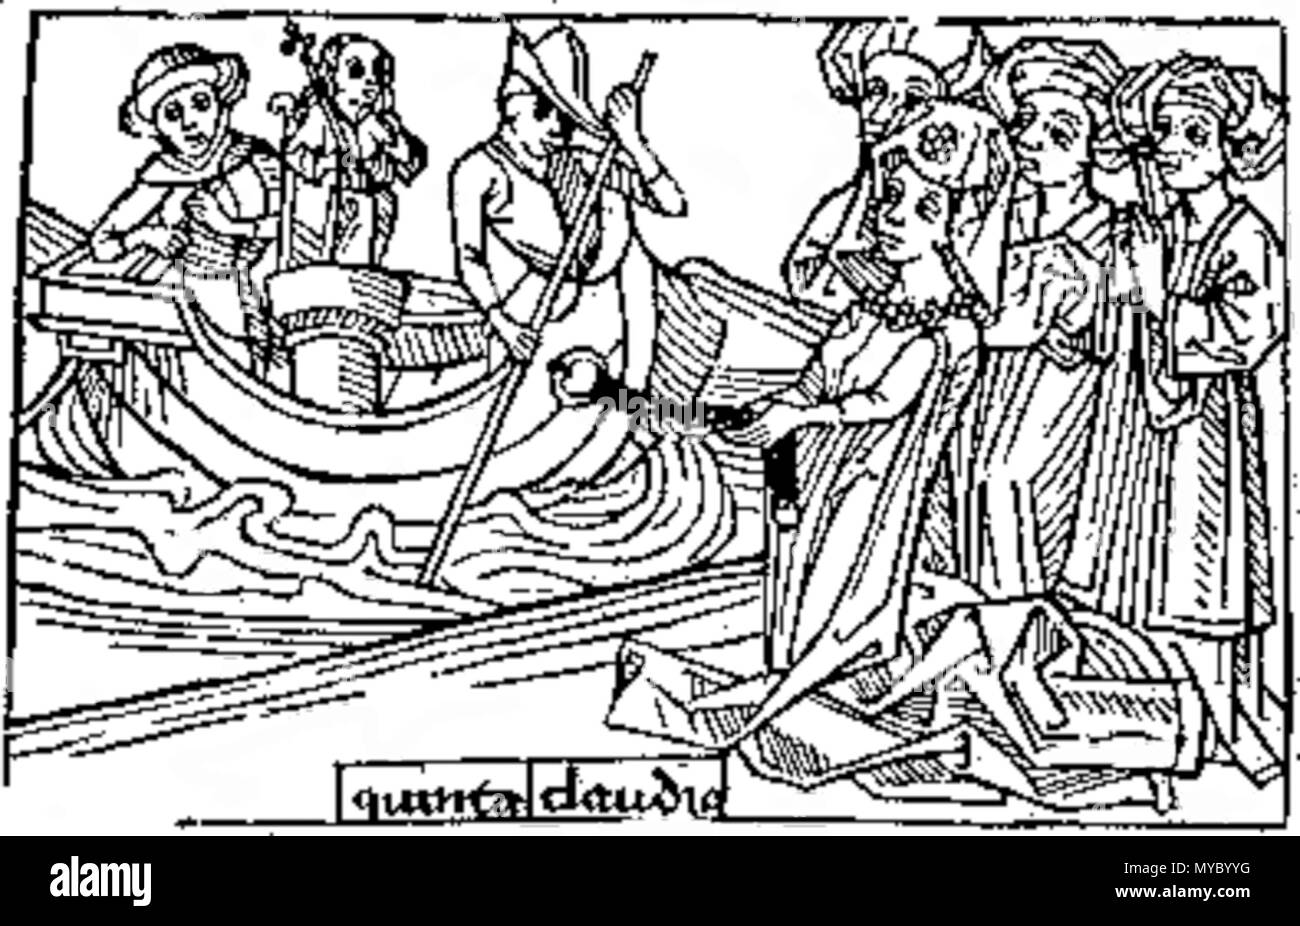 . Claudia Quinta, roman legend woodcut from late medieval period . Unknown date. Unknown 114 Claudia Quinta - 2 - Stock Image